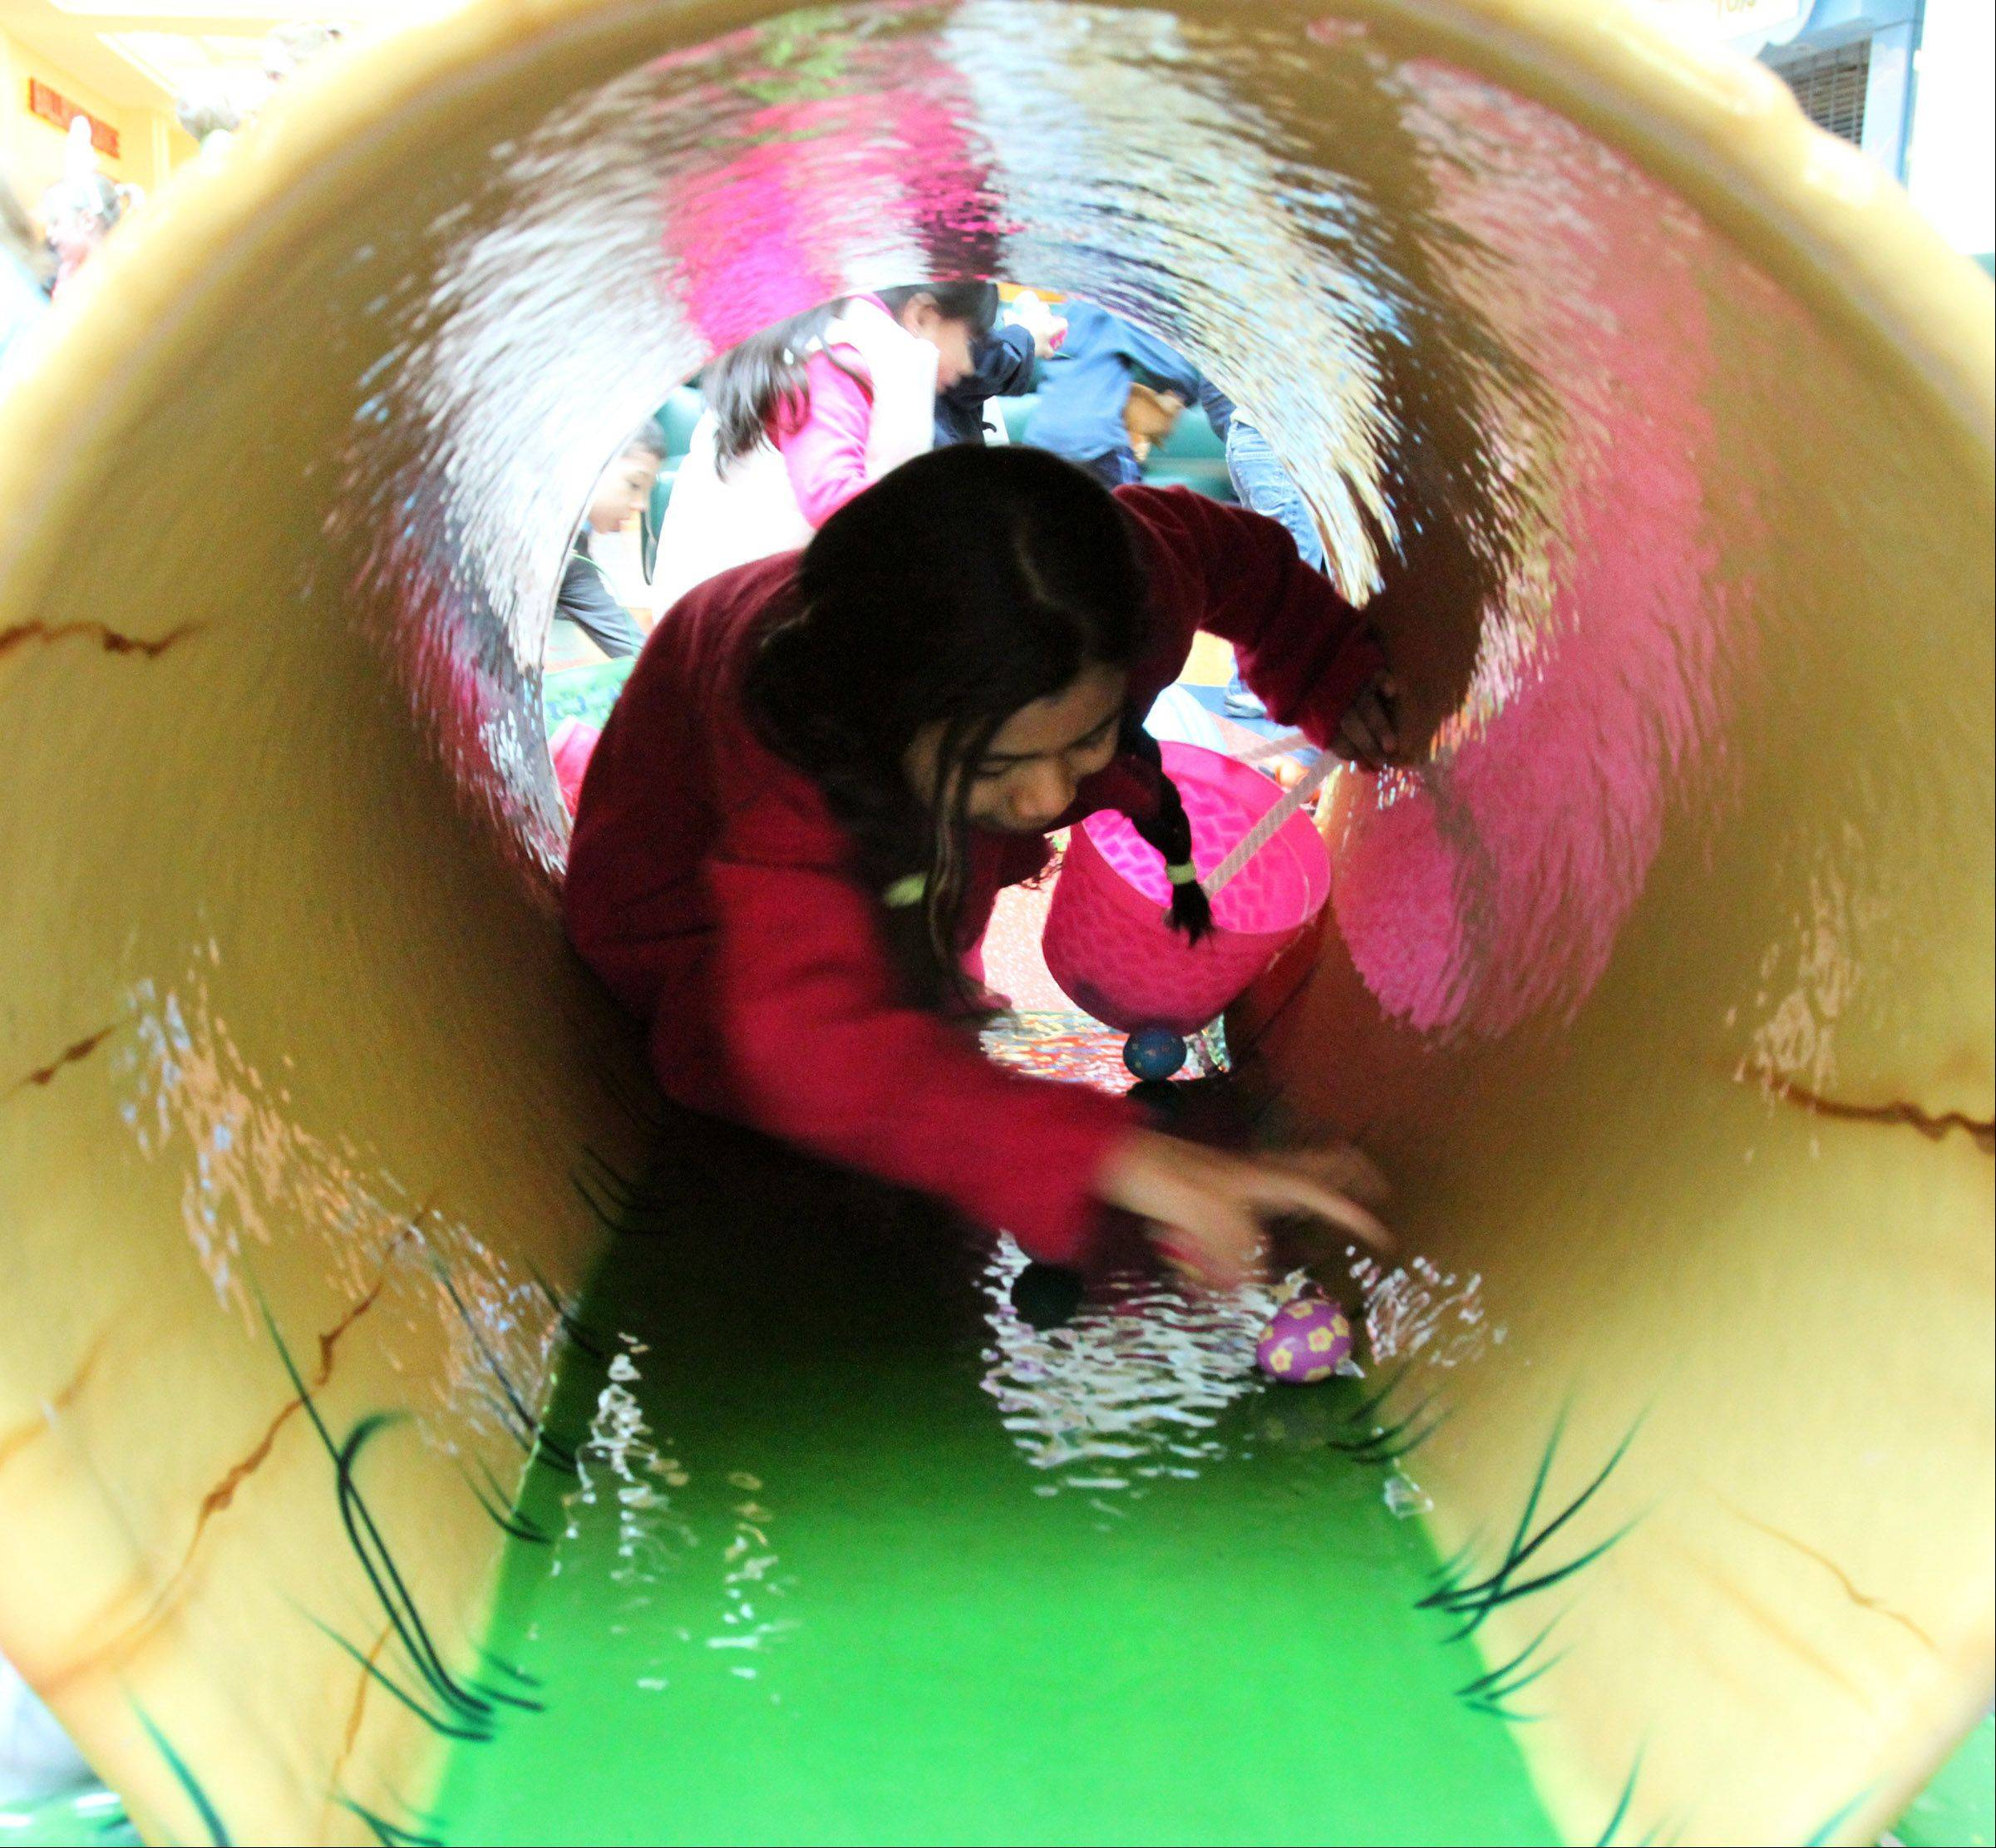 Alejandia Guzman, 8, of Mundeleinm, finds an egg inside of a tunnel in the play-town area at the annual Easter egg hunt at Westfield Hawthorn Mall in Vernon Hills on Saturday. The mall-wide egg hunt event included petting zoo, face-painting, donuts, and music.